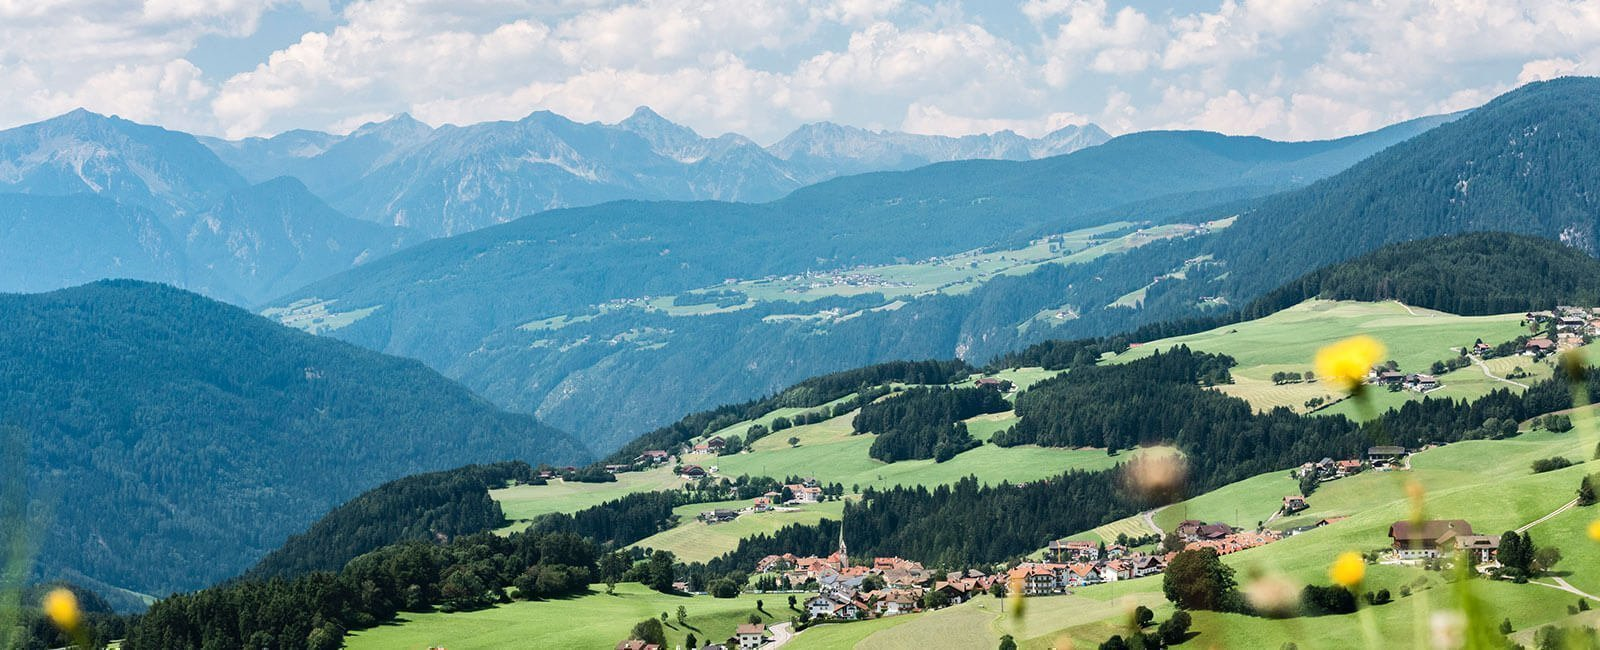 Discover in Pustertal one of the most beautiful mountain regions in the world